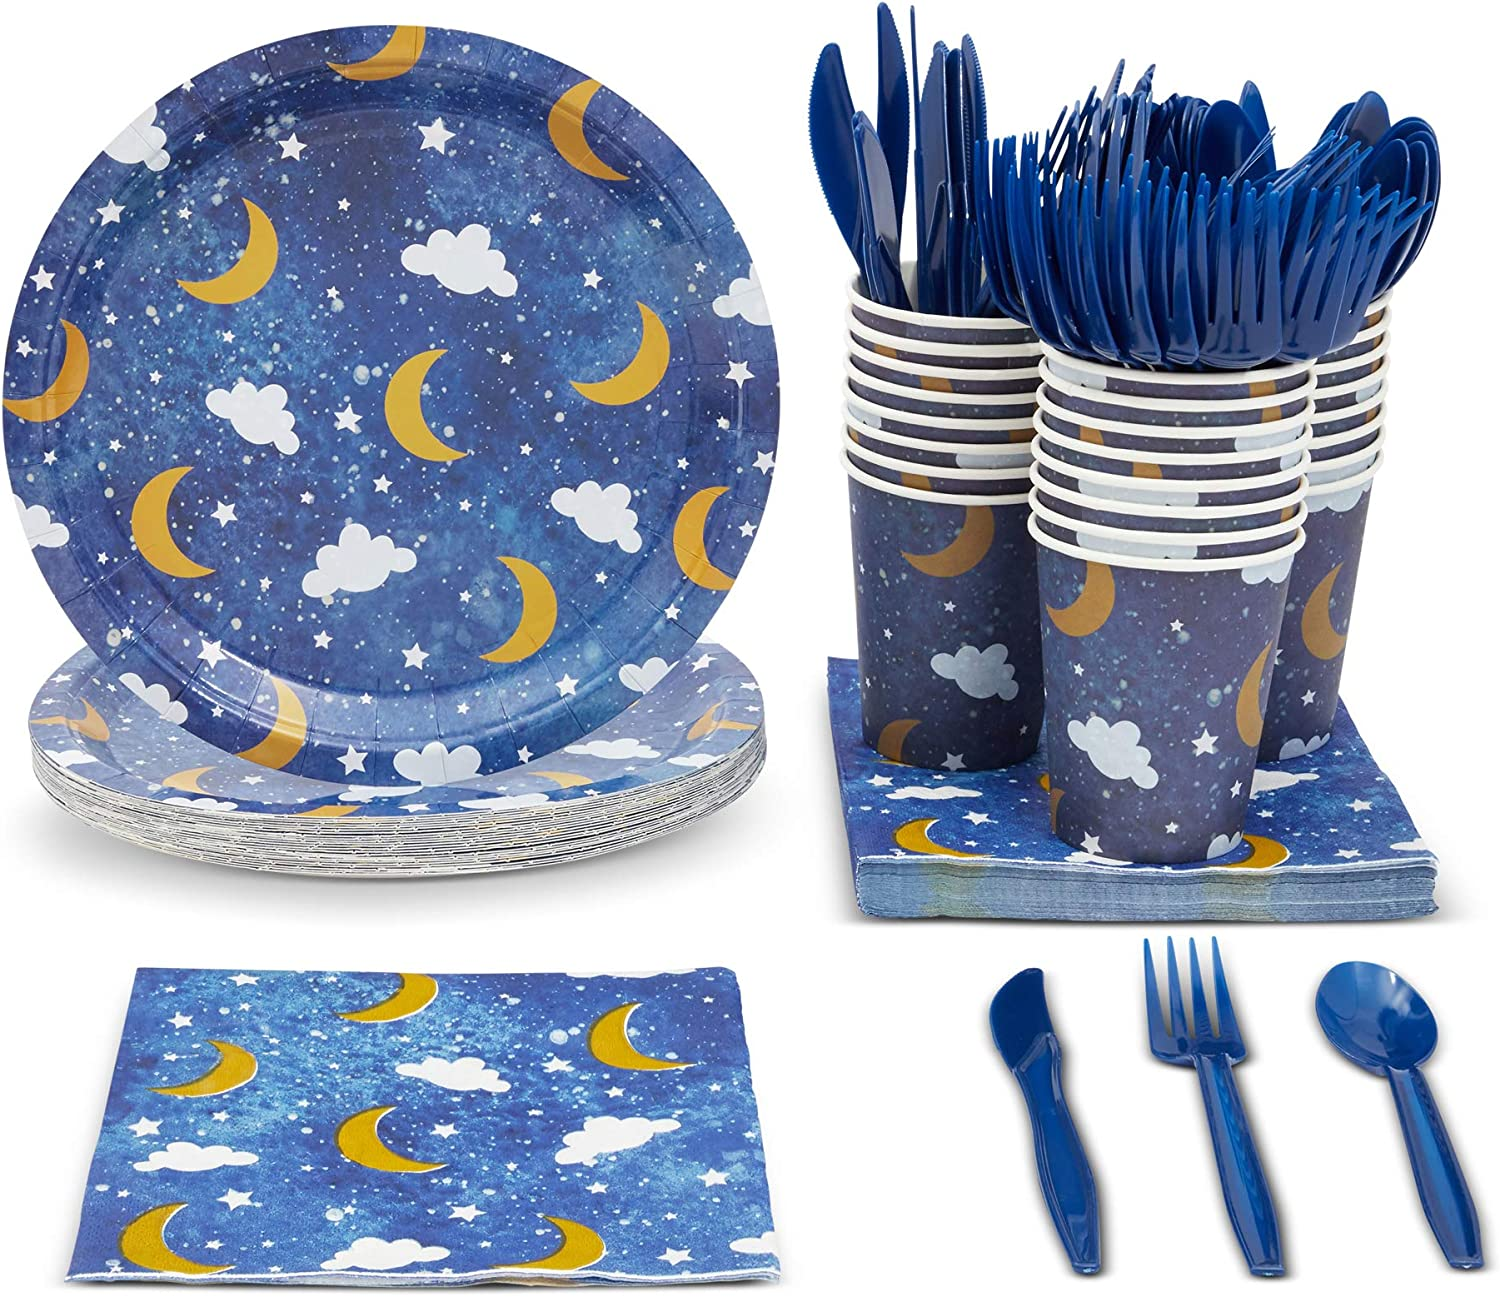 Blue Panda Twinkle Little Star Baby Shower Theme Party Pack (Serves 24) Paper Plates, Napkins, Cups & Cutlery